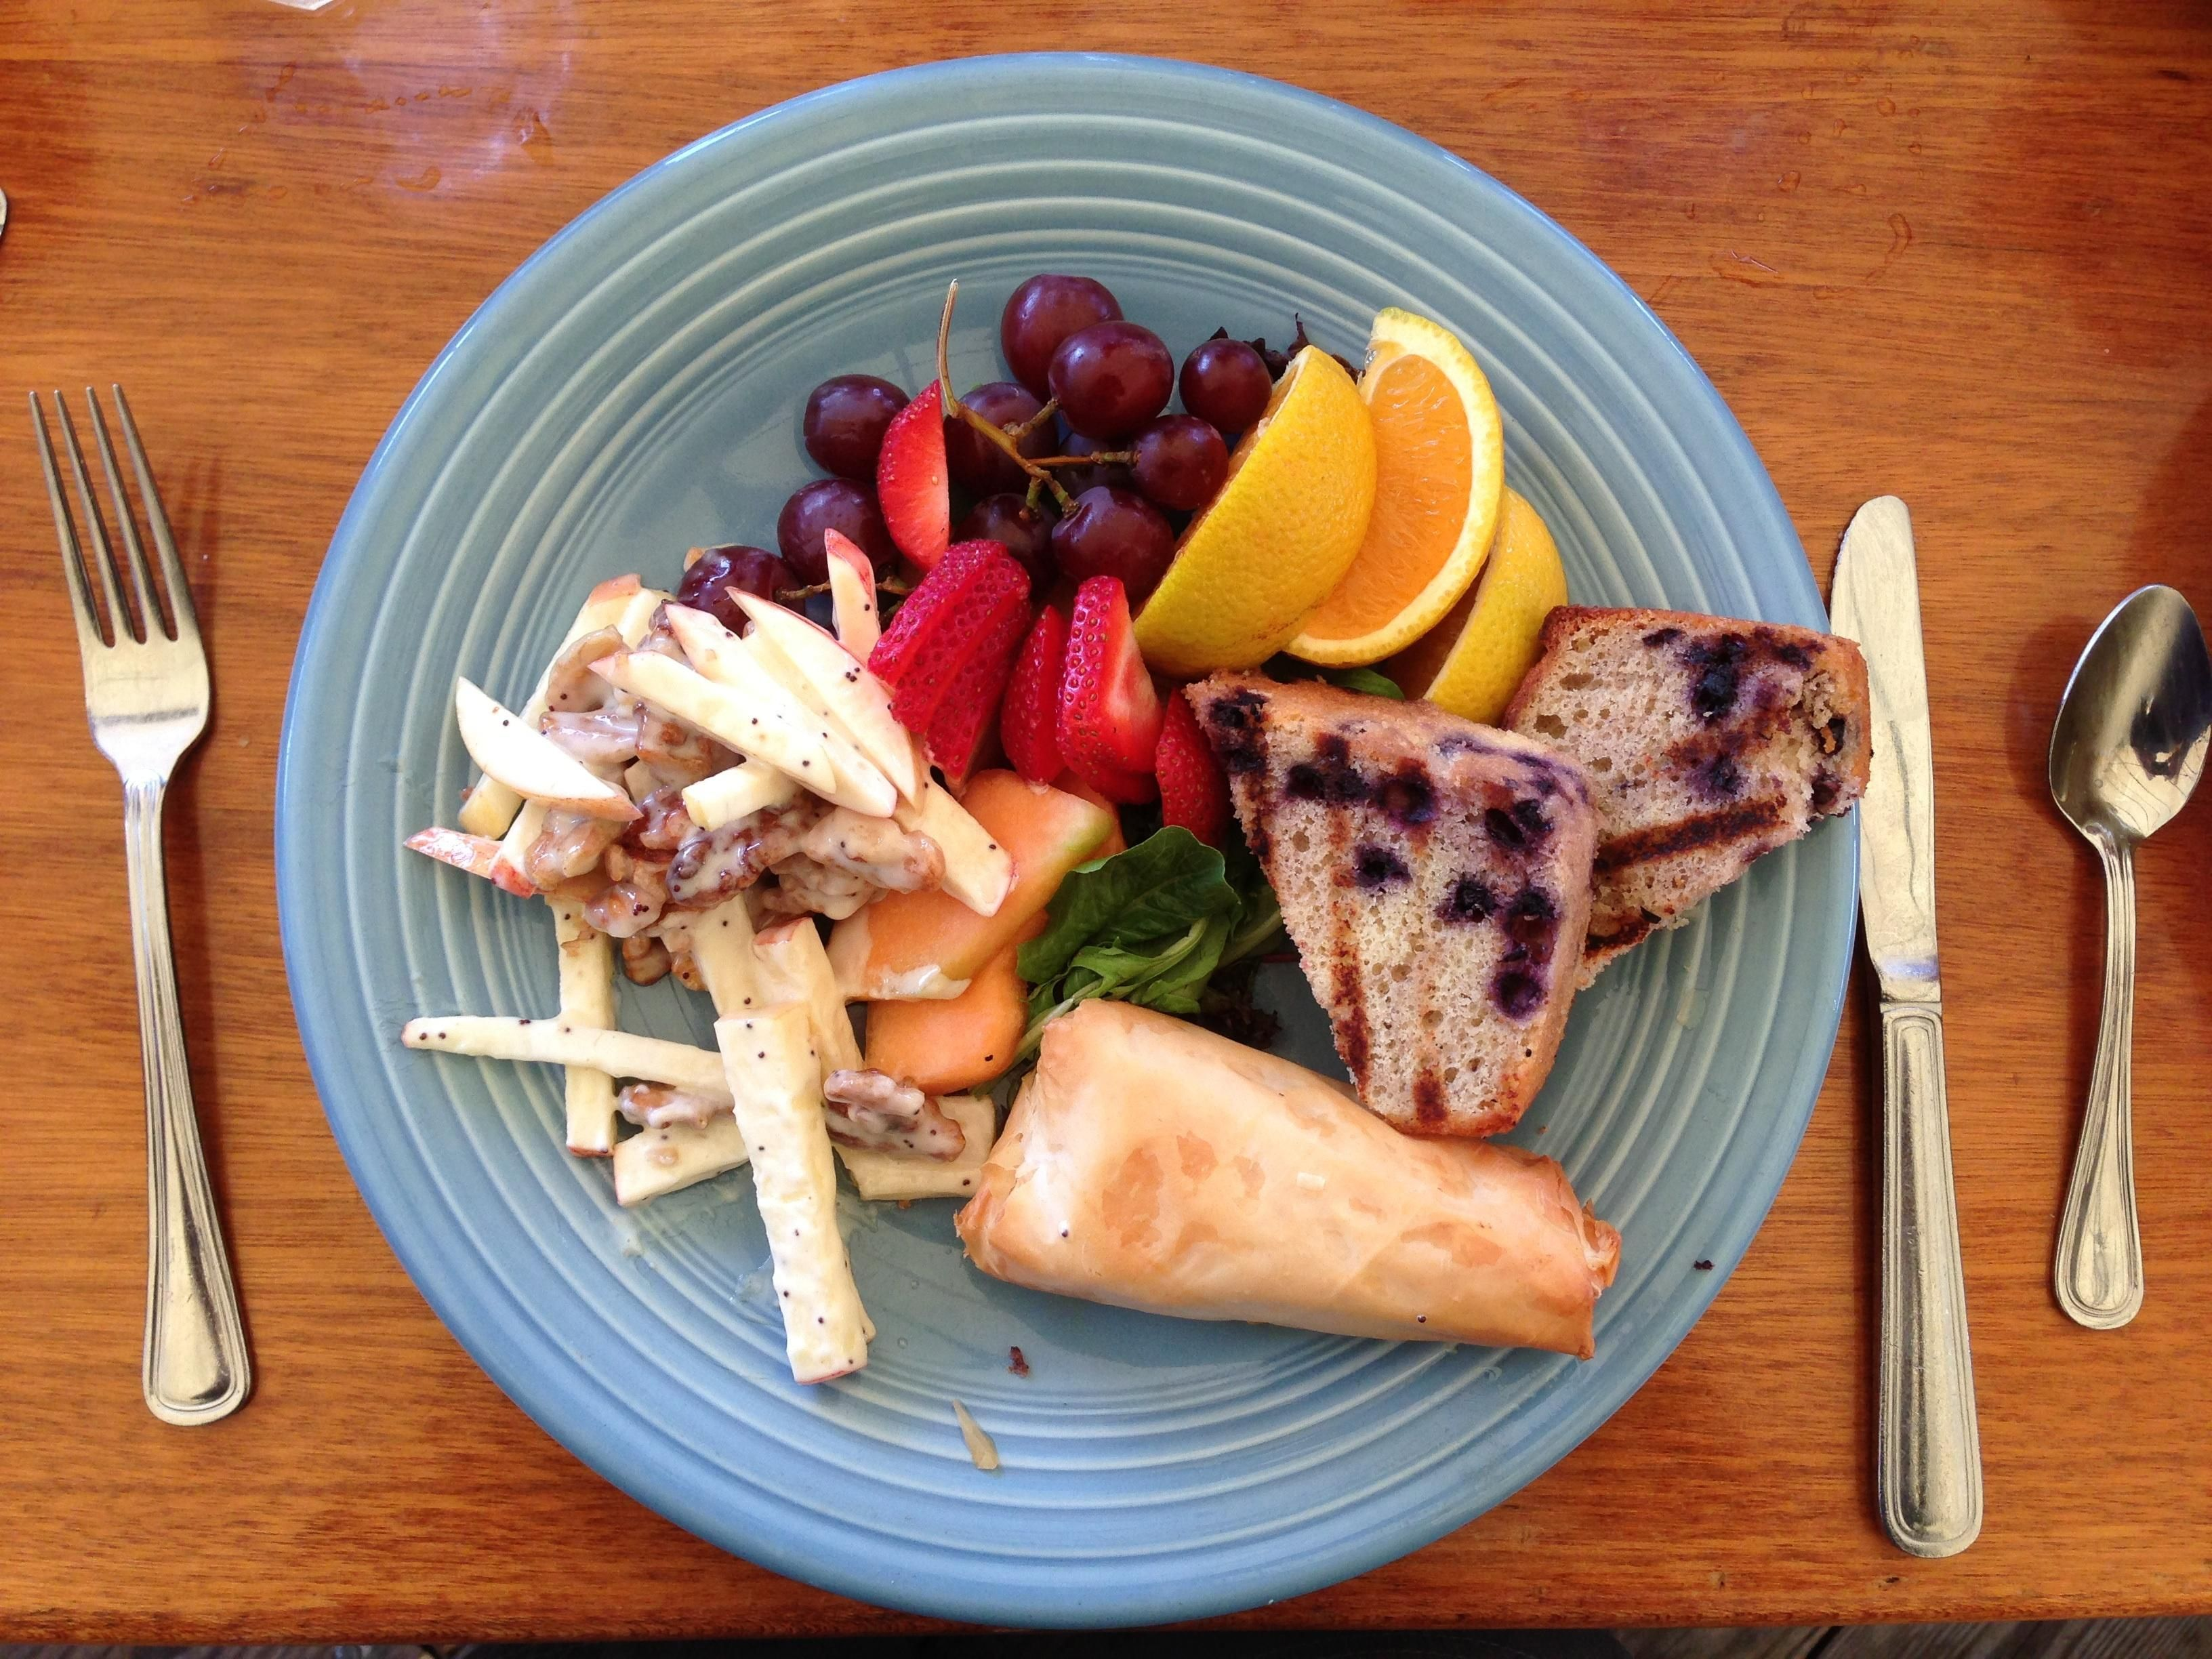 During Your Midcoast Maine Vacation Eat At Some Of The Best Restaurants In Camden